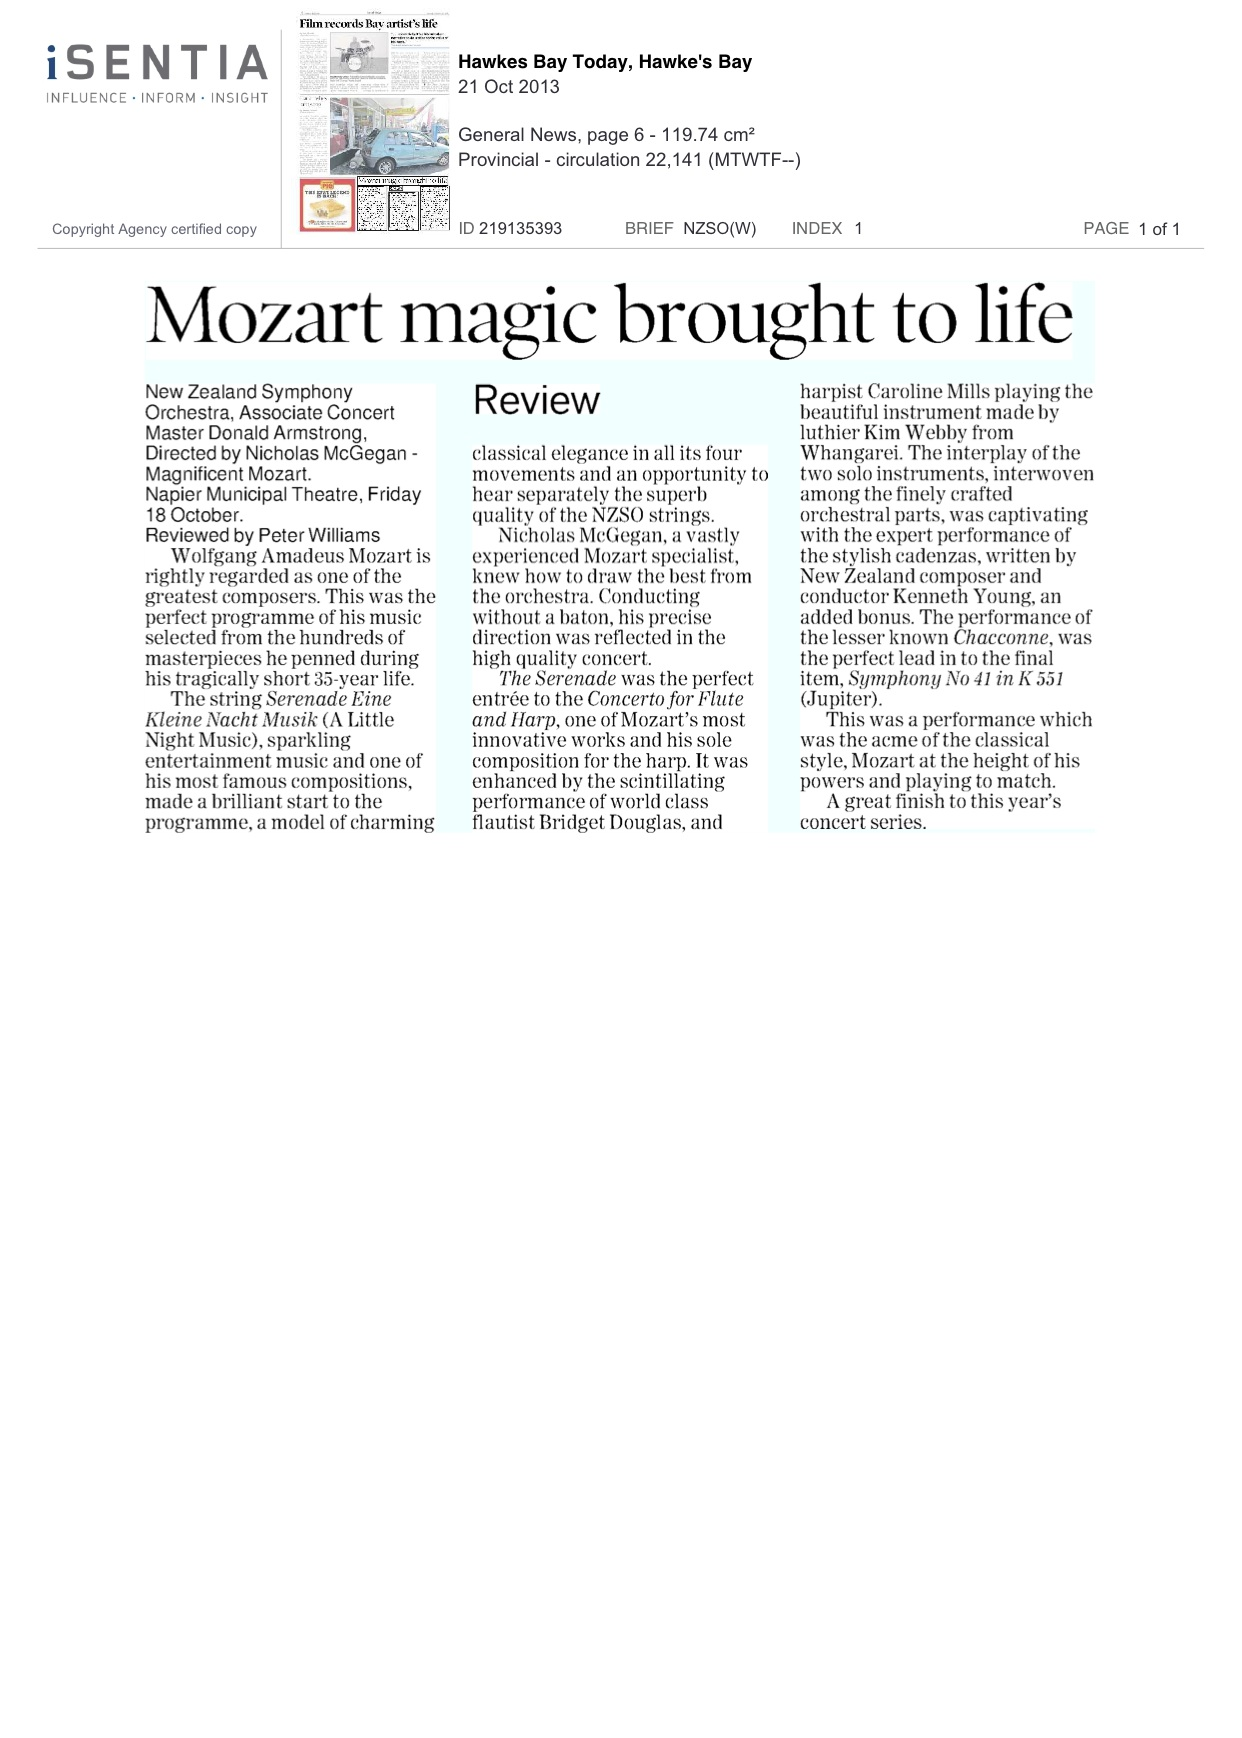 HawkesBayToday.MagMozartReview.21.10.13